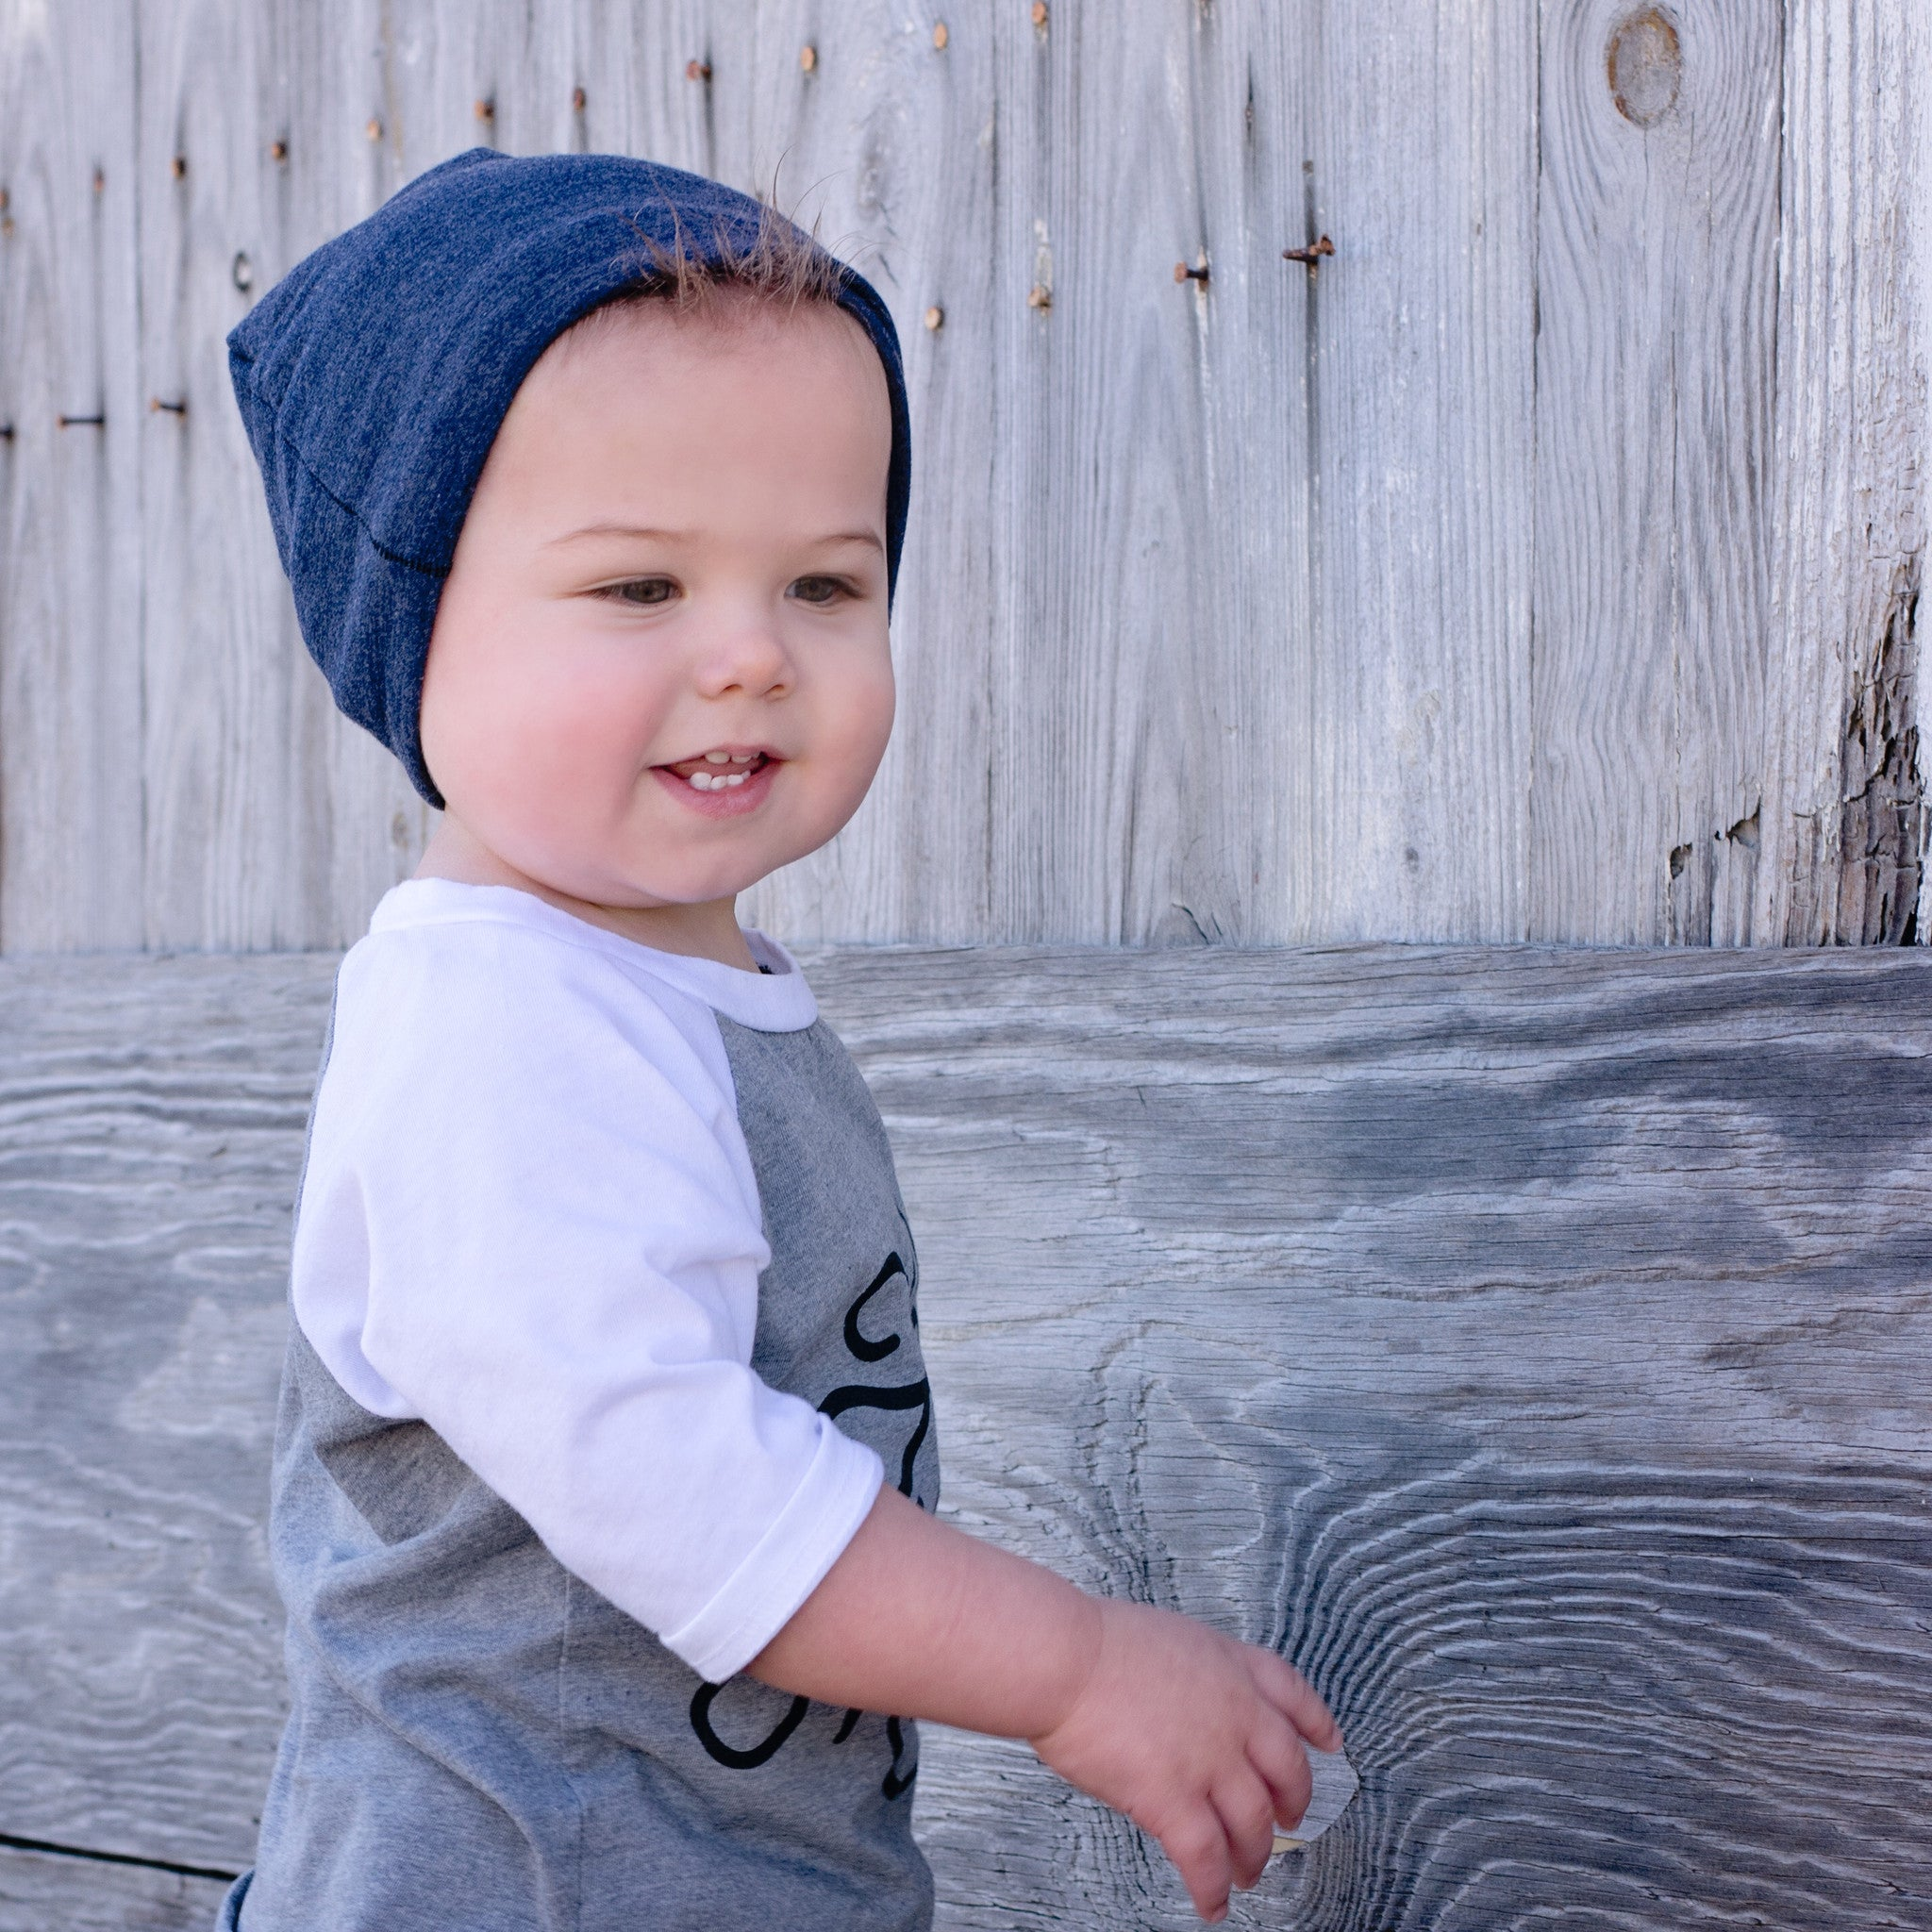 ... Toddler Boy wearing Blue Slouchy Beanie Baby Hat ... 094fc3145f4